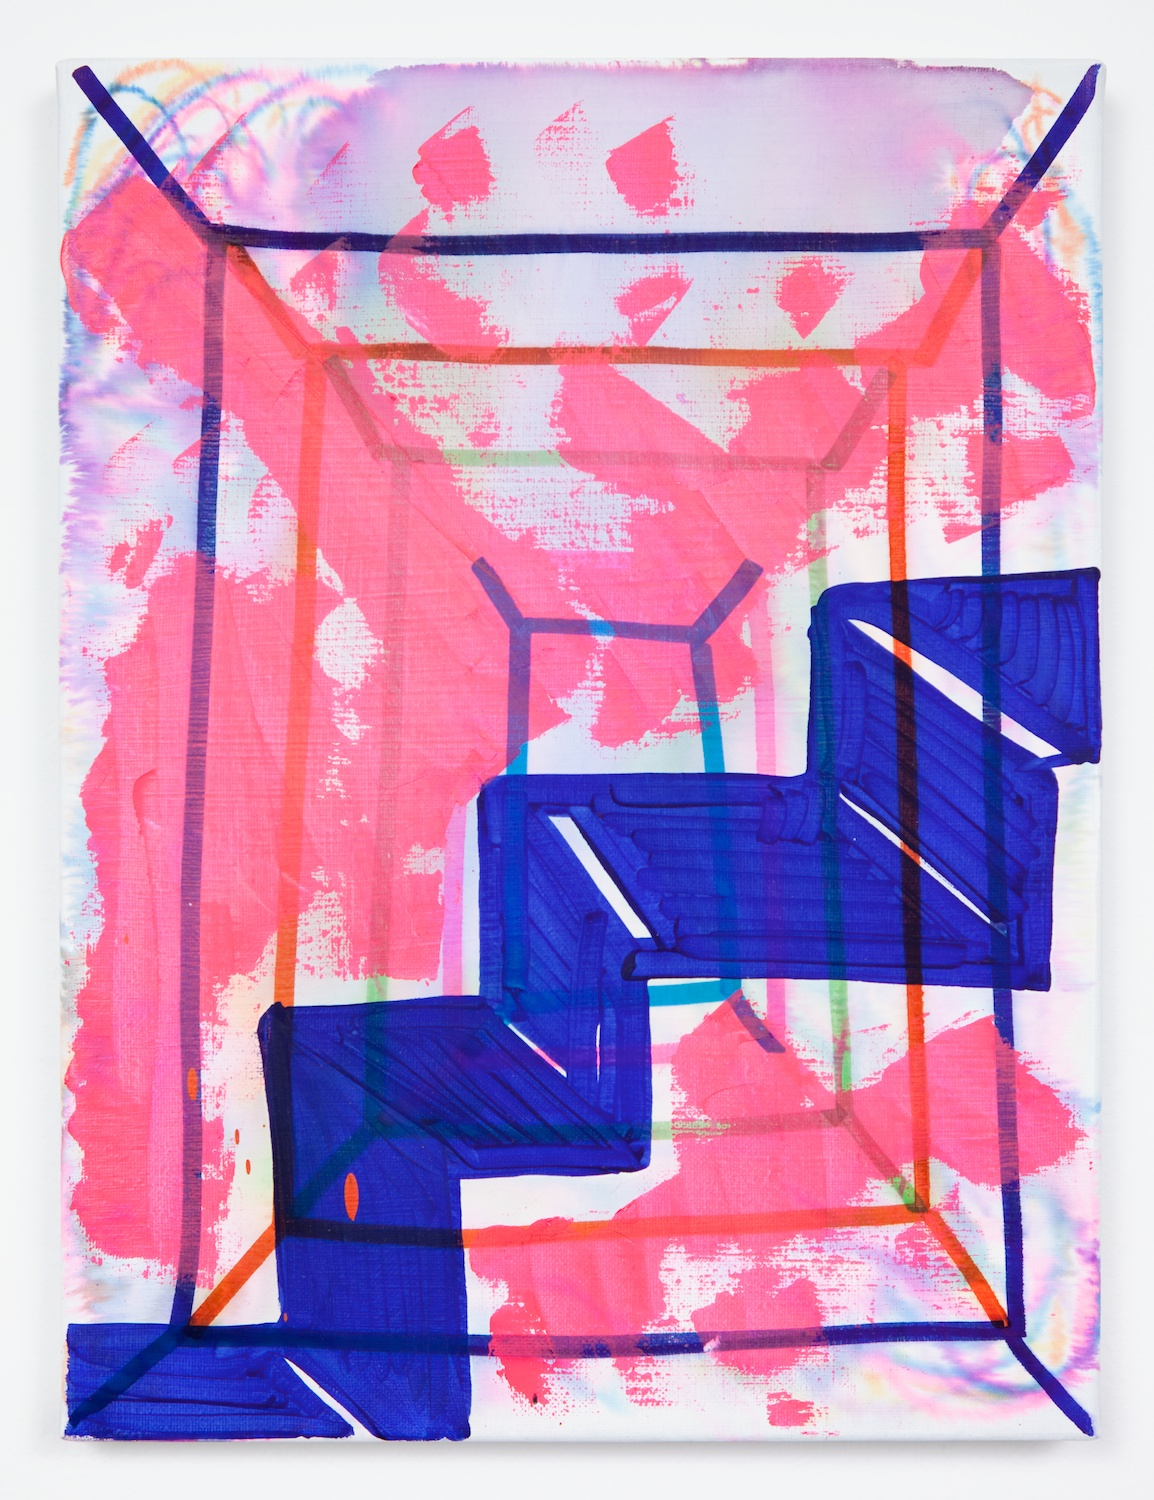 Joanne Greenbaum  Untitled  2011 Oil, acrylic and mixed media on linen 16h x 12w in JG022